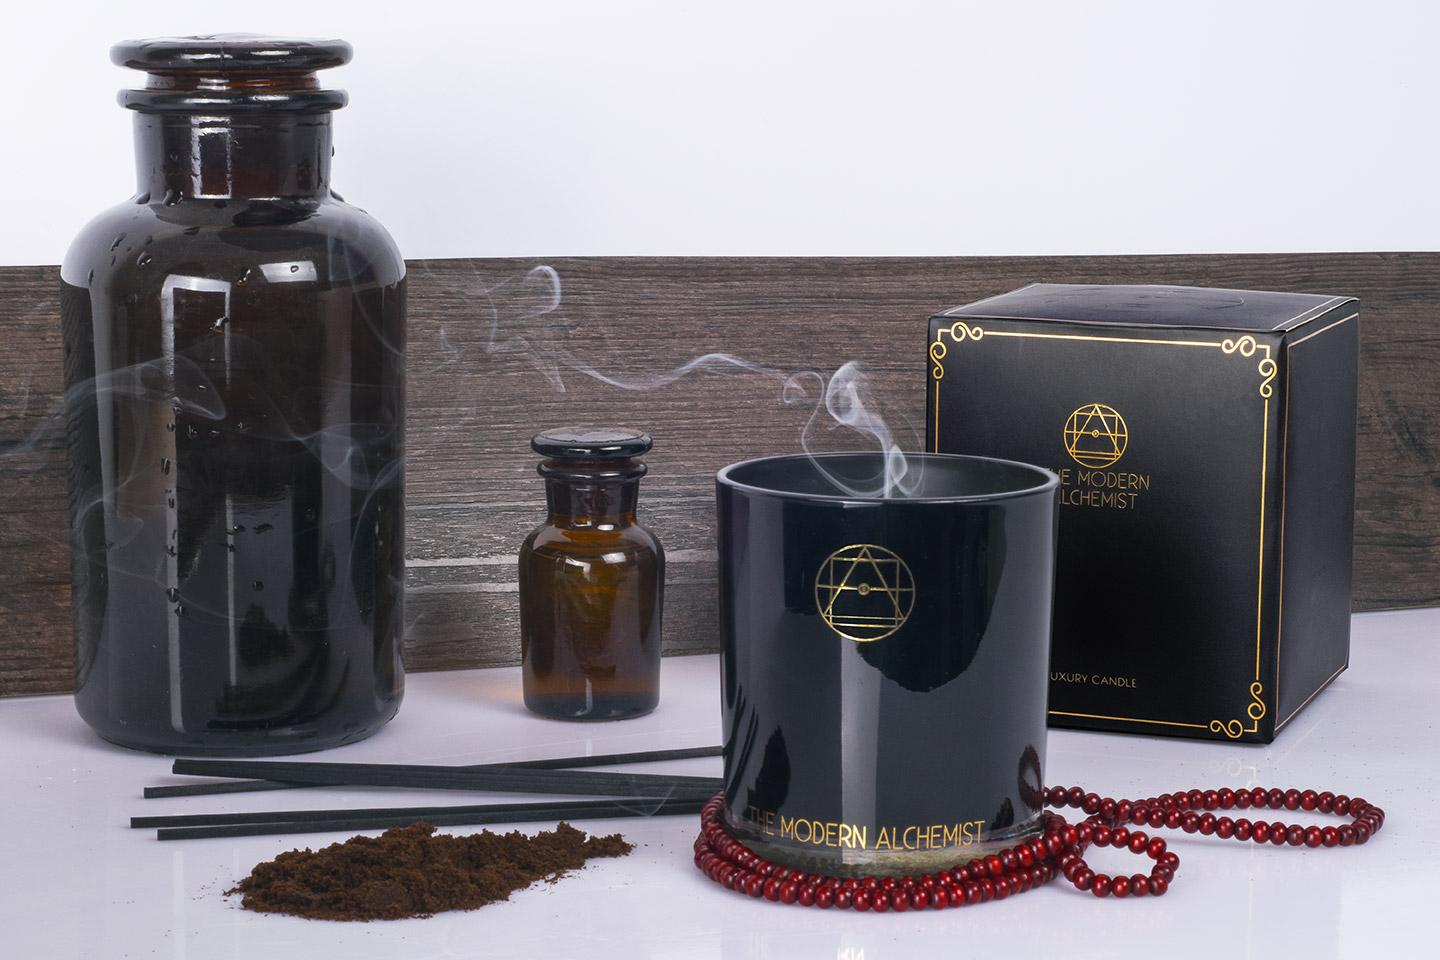 The Modern Alchemist - Vintage Leather - Premium Soy Wax Candle, 100% Natural